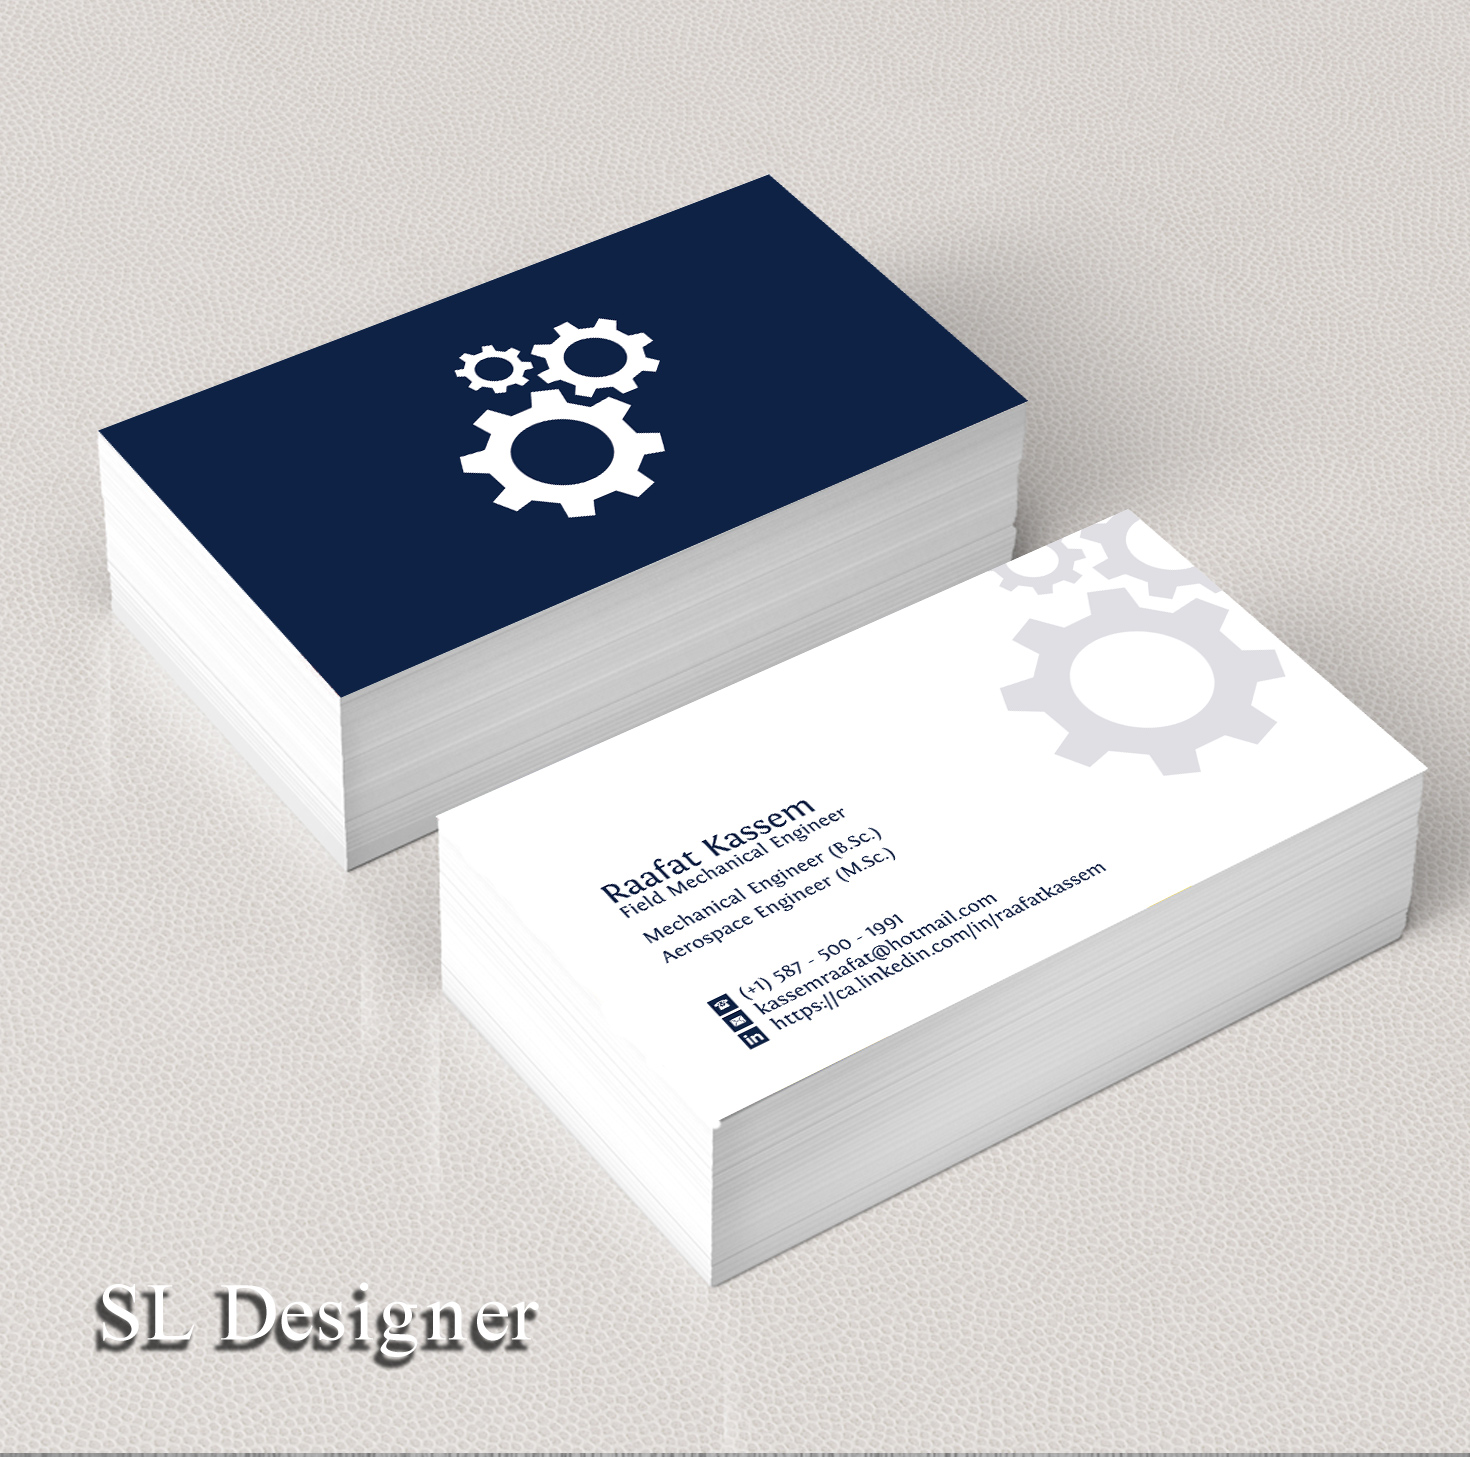 Elegant modern business card design for raafat kassem by sl business card design by sl designer for mechanical engineer business card design unemployed magicingreecefo Image collections